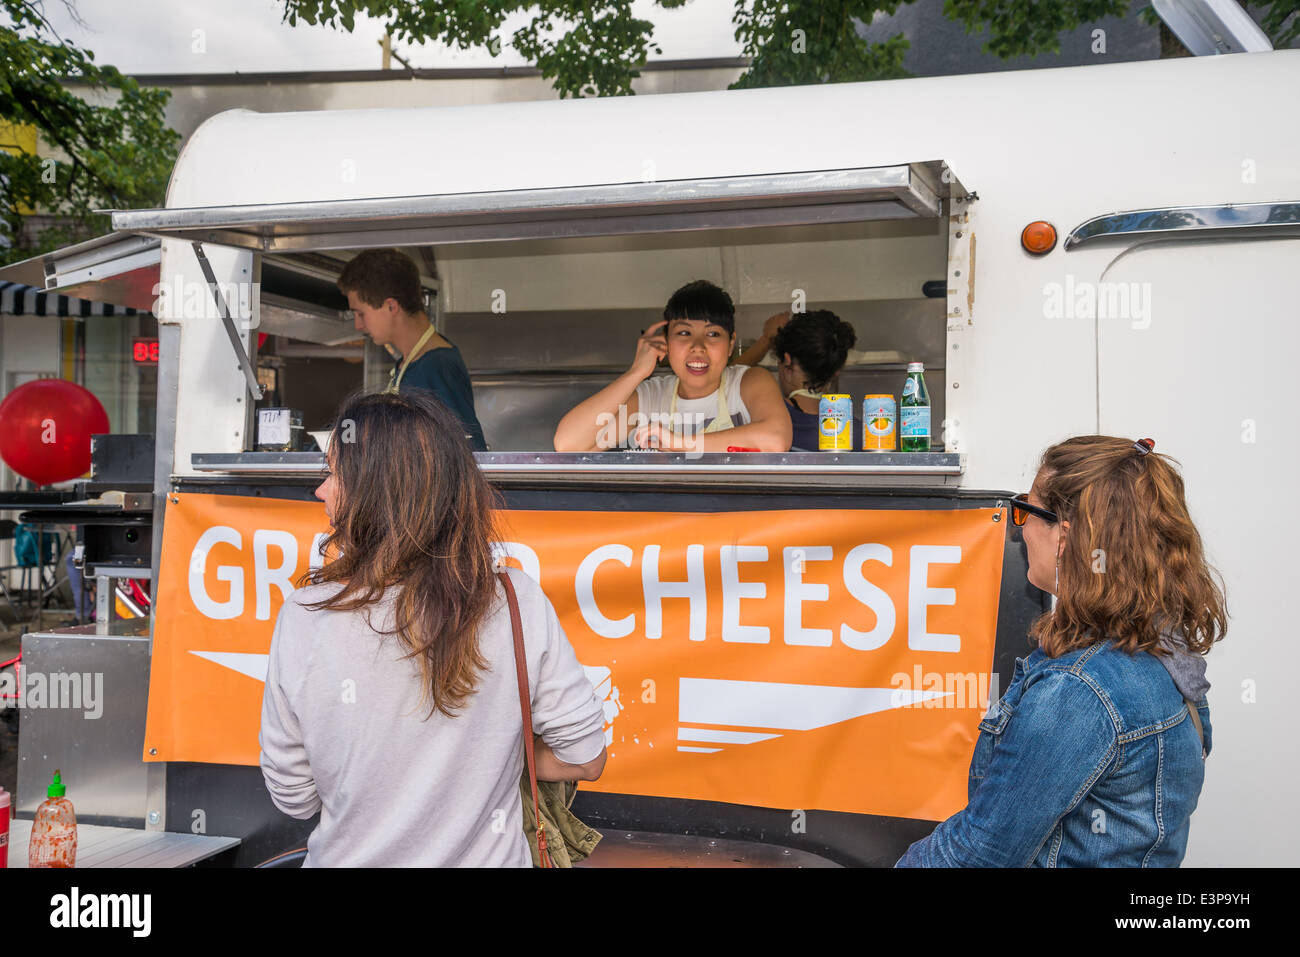 Grilled Cheese Street Vendor, Food Cart, Vancouver, British Columbia, Canada - Stock Image